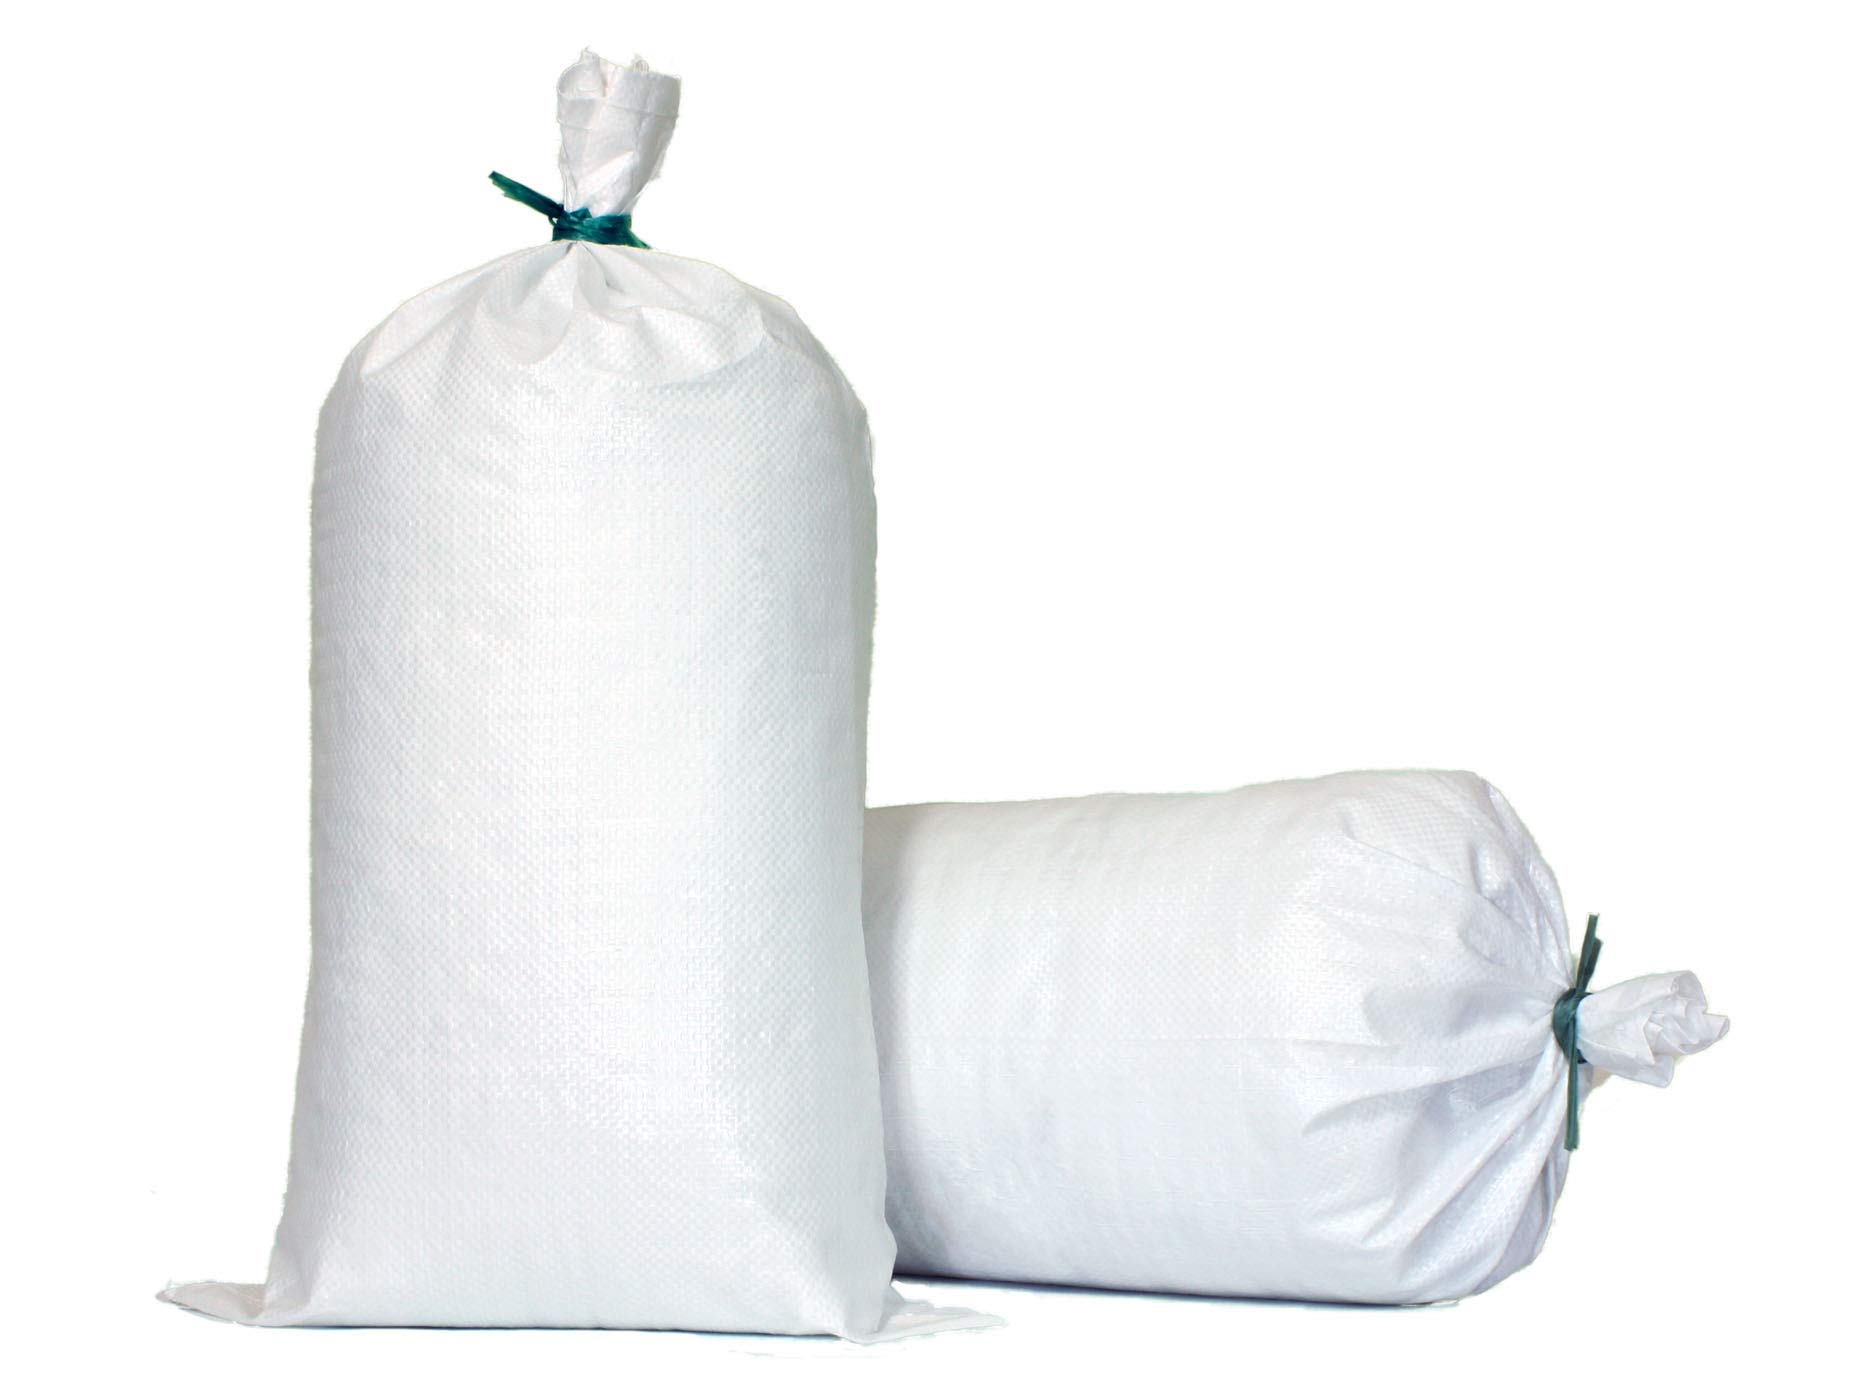 TerraRight Sandbags - Extra Durable Empty White Woven Polypropylene Sand Bags w/Ties, Max. UV Protection, 14'' x 26'' (20 Count)